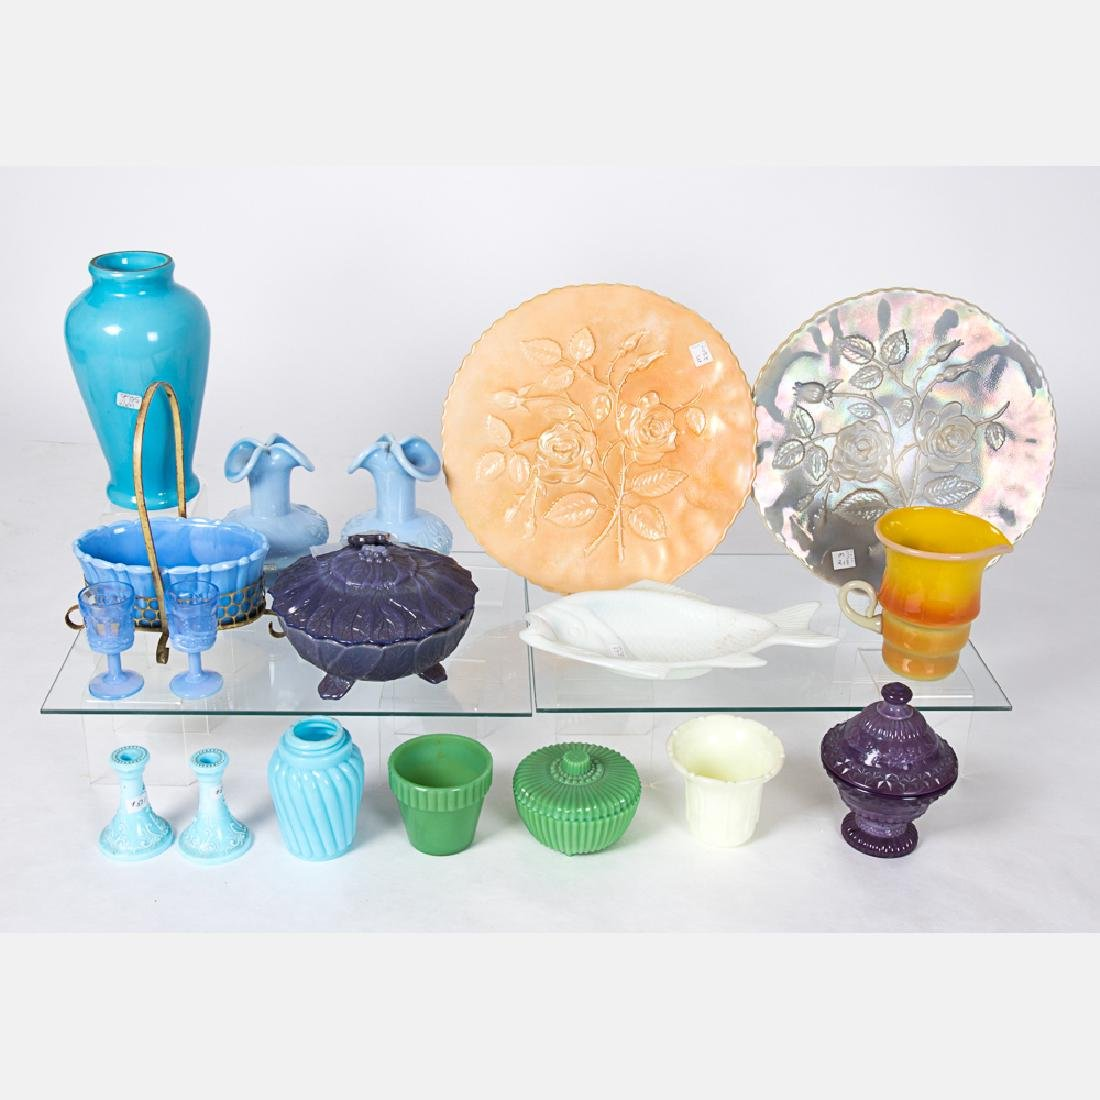 A Collection of Colored Pressed Glass Serving and